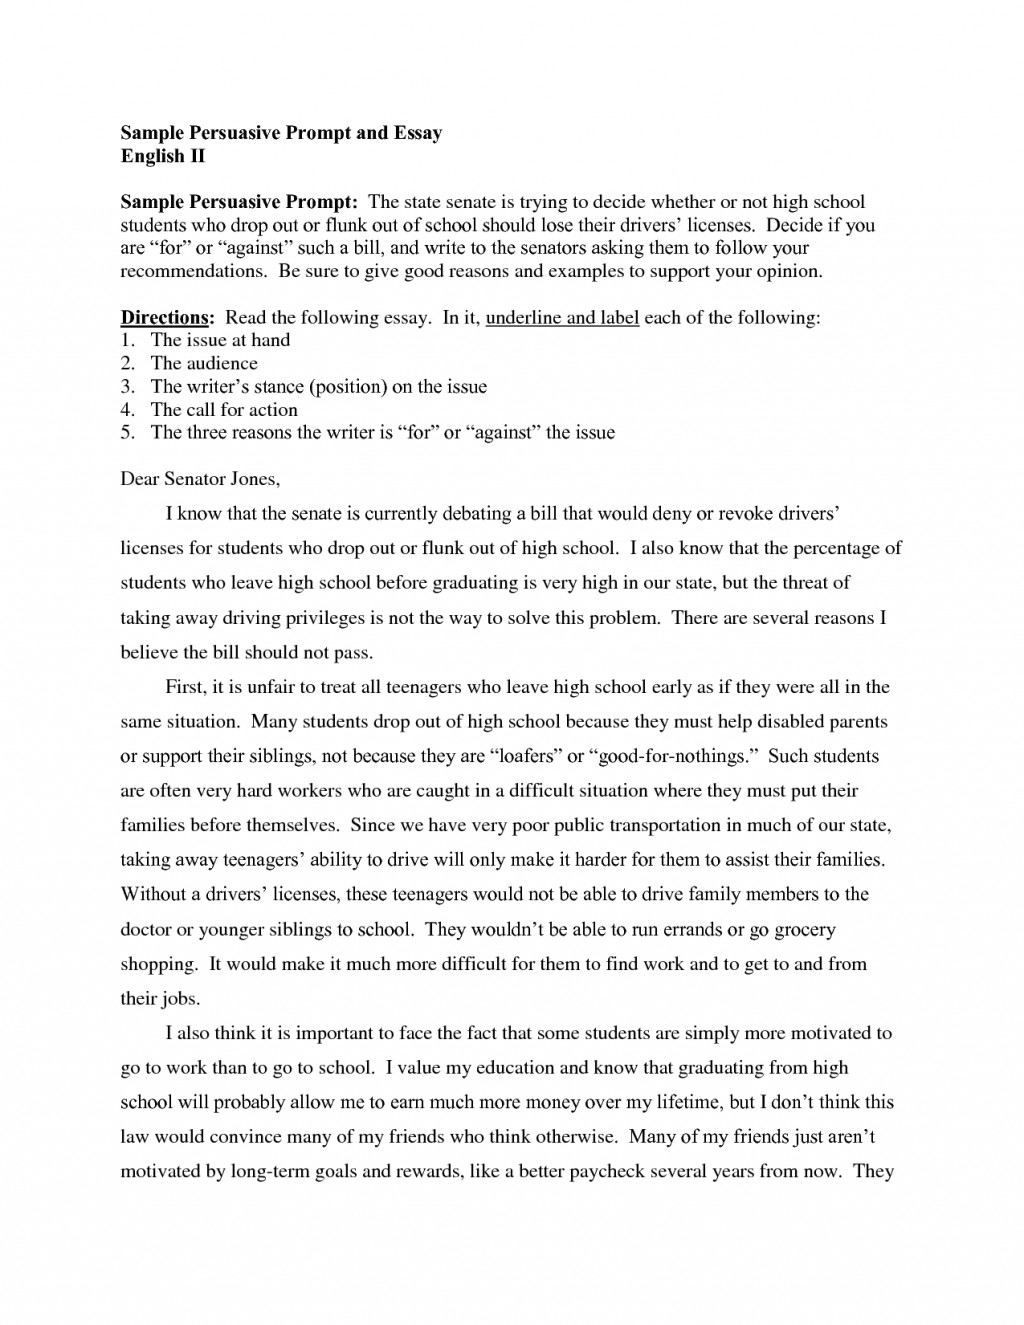 013 Research Paper Easy Topic Persuasive Essay Topics For High School Sample Ideas Highschool Students Good Prompt Funny Fun List Of Seniors Writing English Sensational Psychology To Write About Biology Large